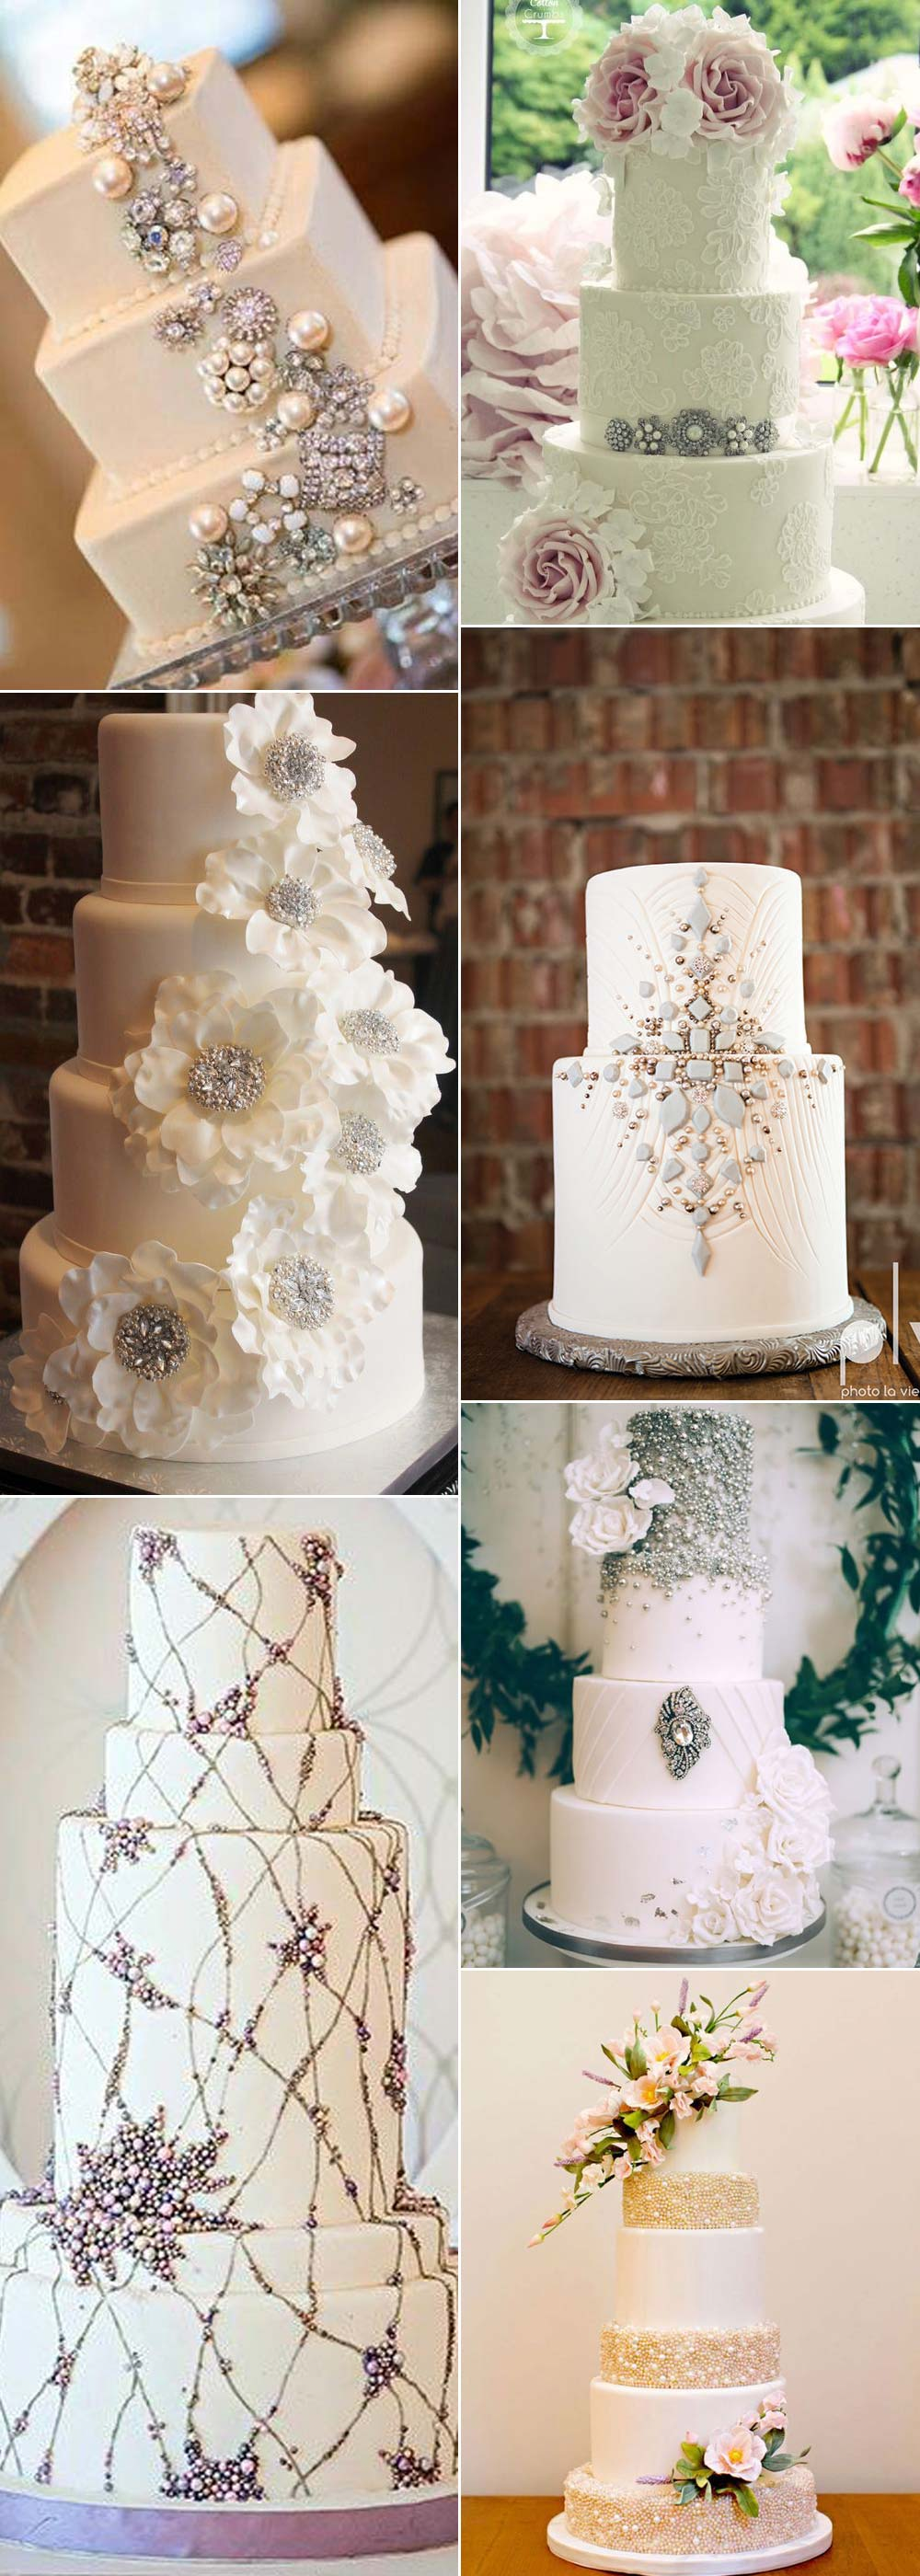 jewelled cake inspiration